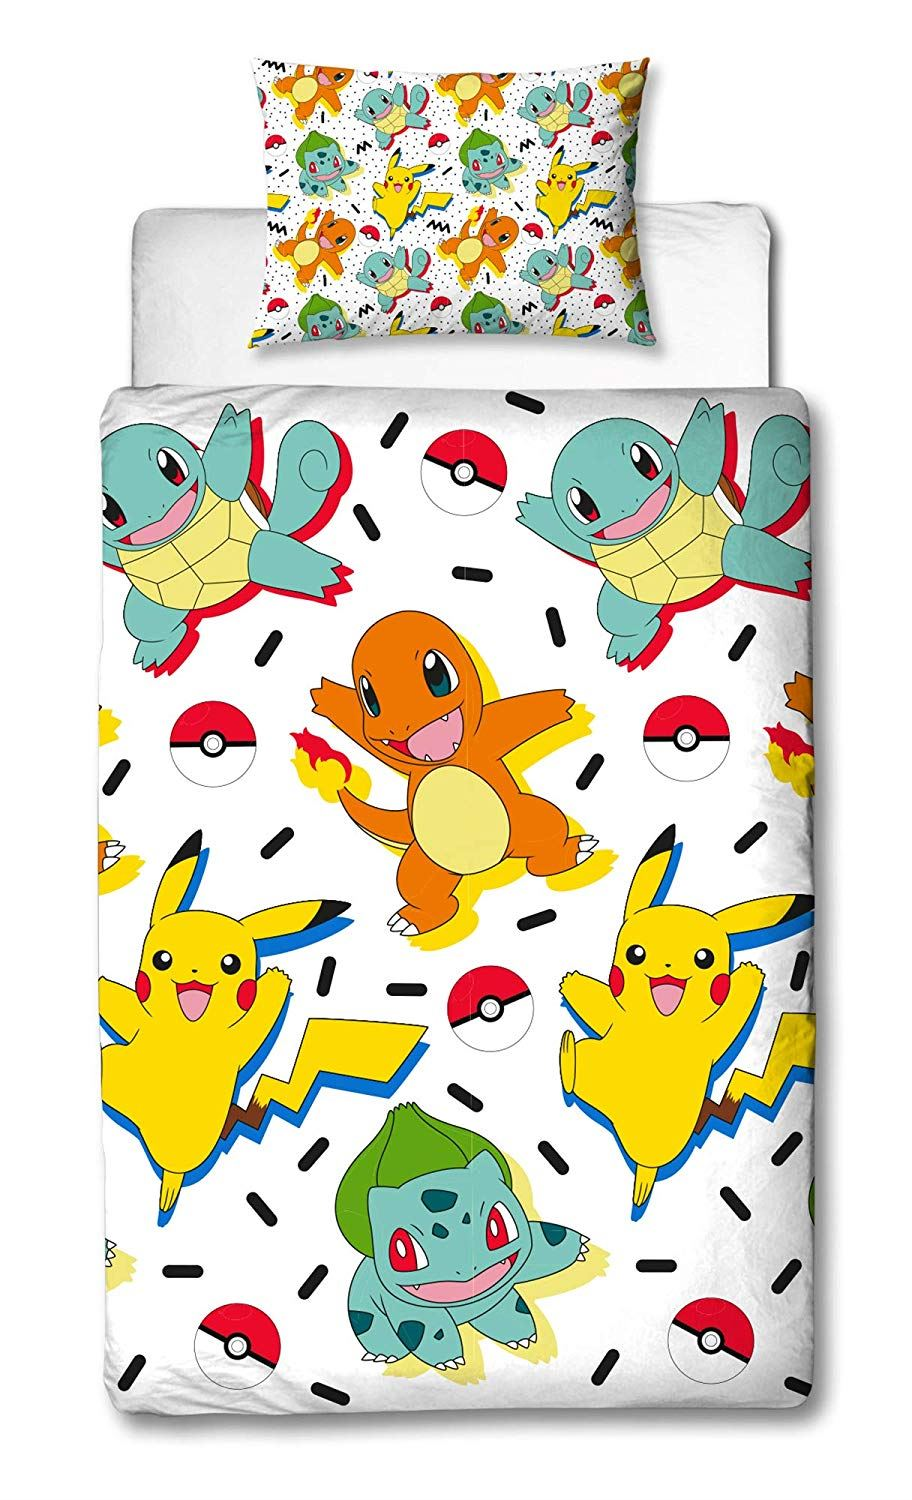 Official-Pokemon-Licensed-Duvet-Covers-Single-Double-Pikachu-Bedding-Gaming thumbnail 23